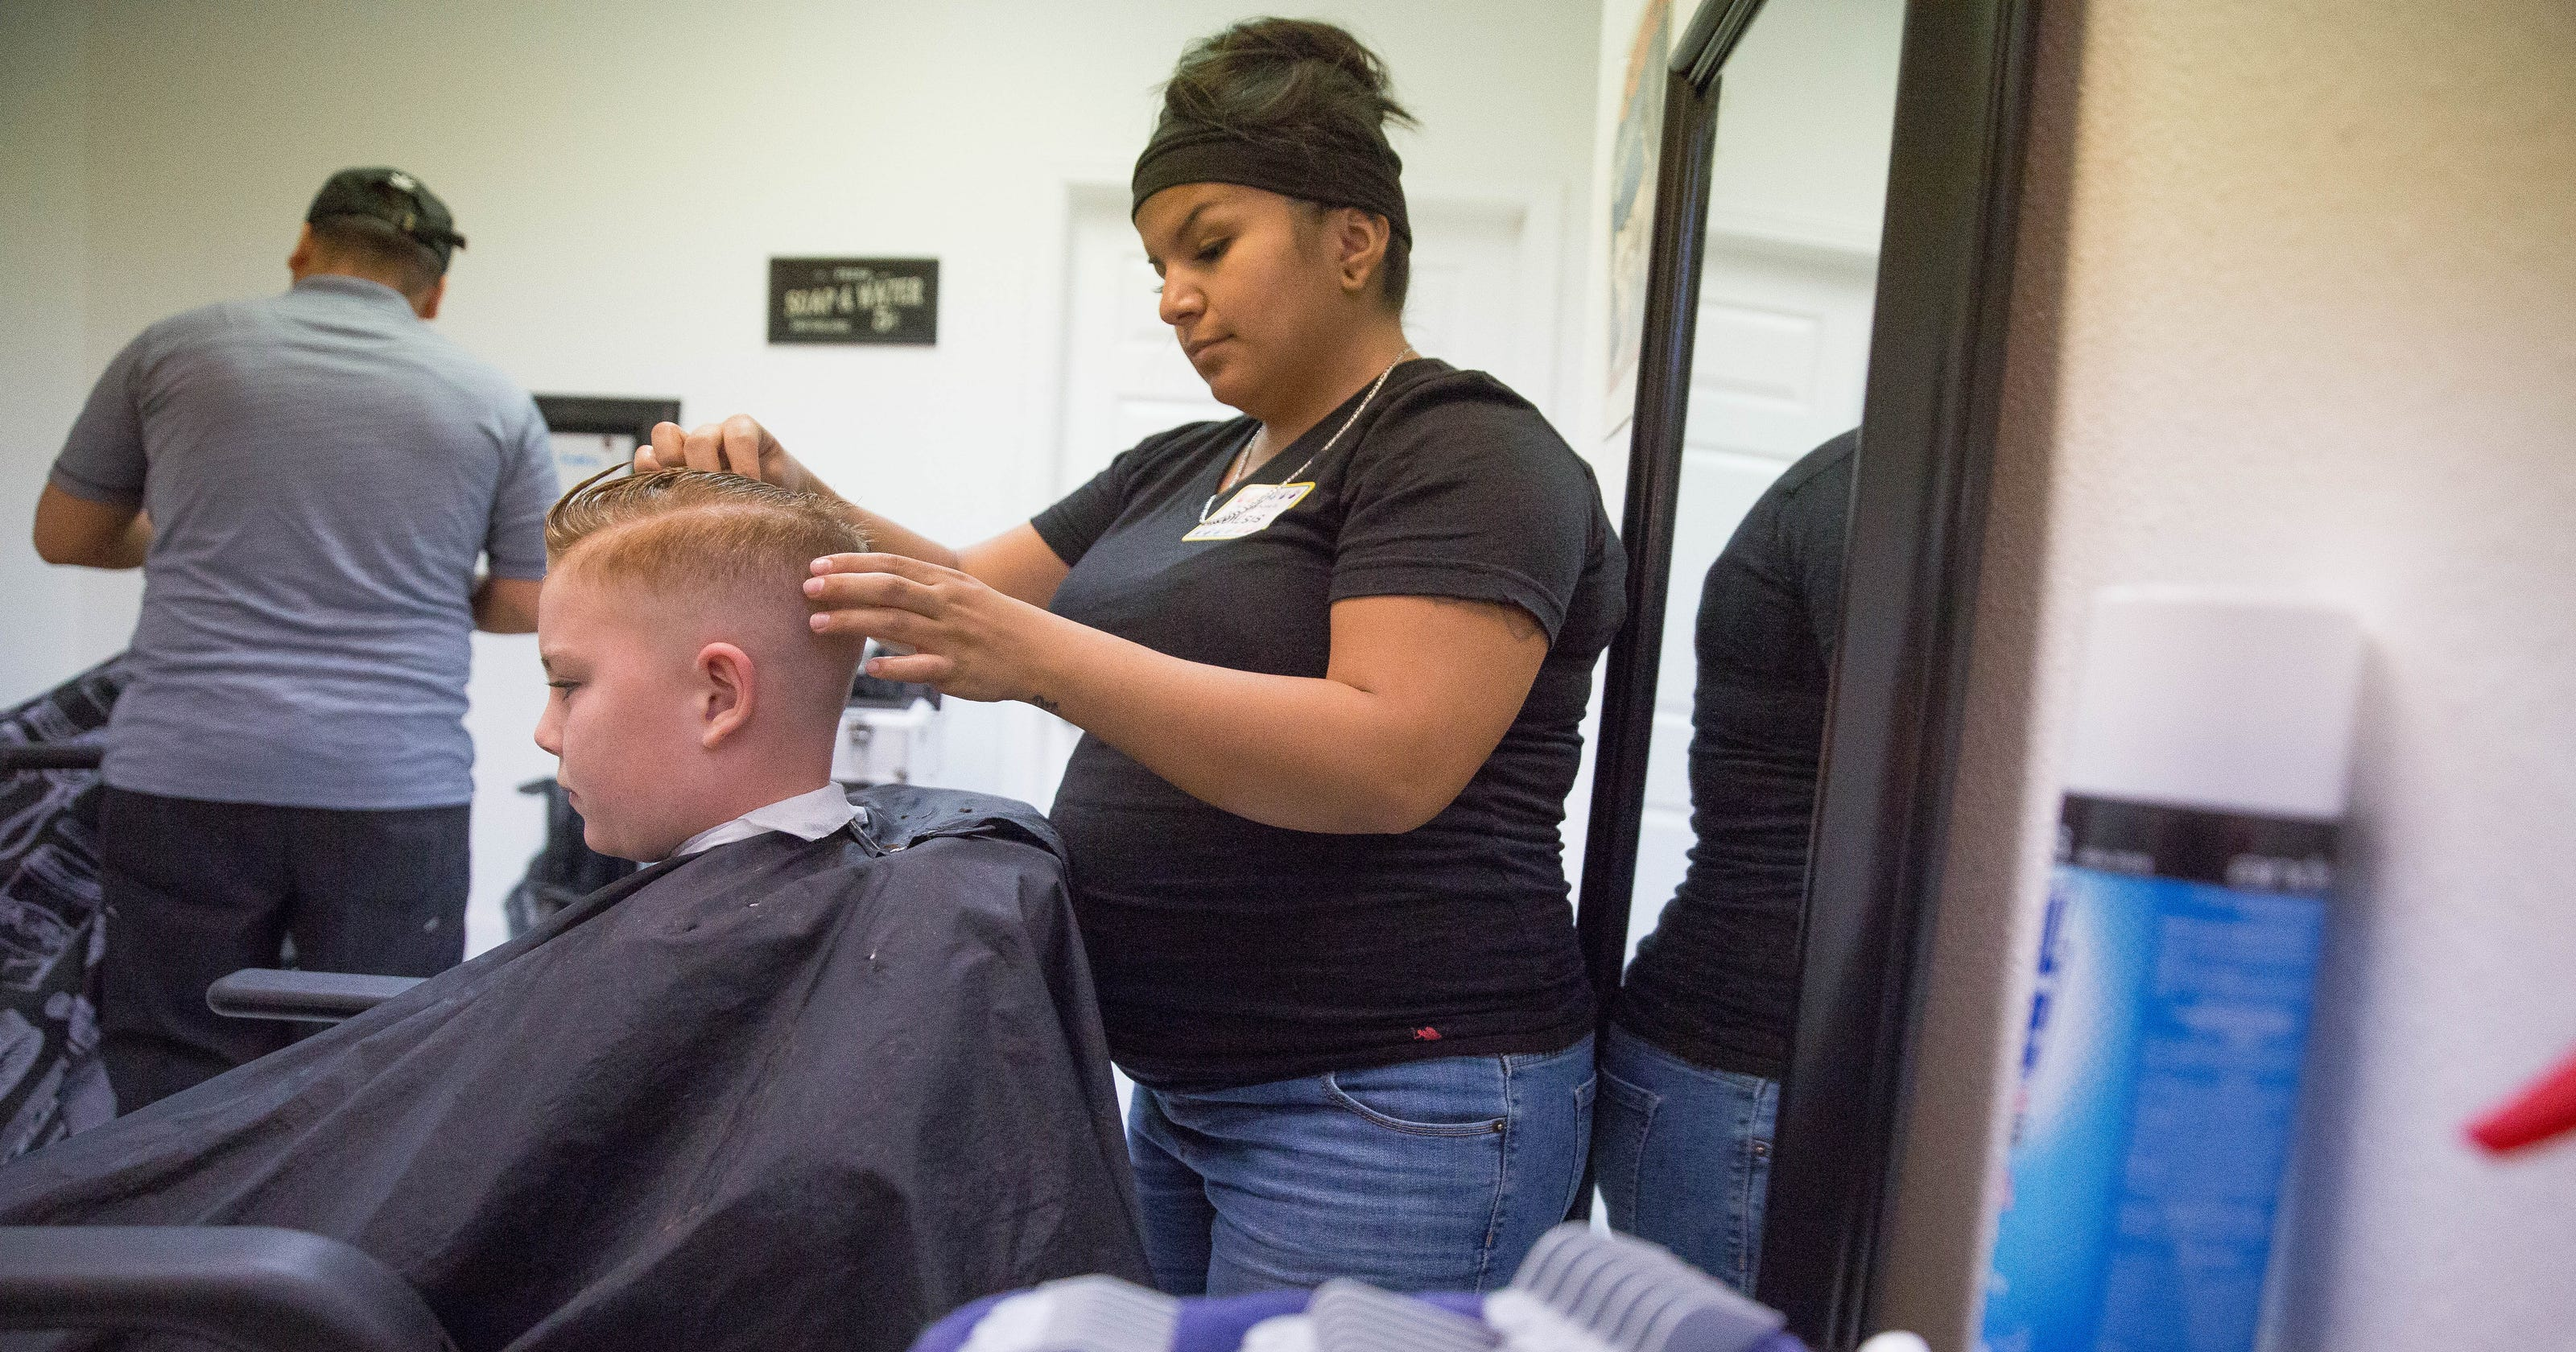 Free Haircuts Help Kids Get Ready For School